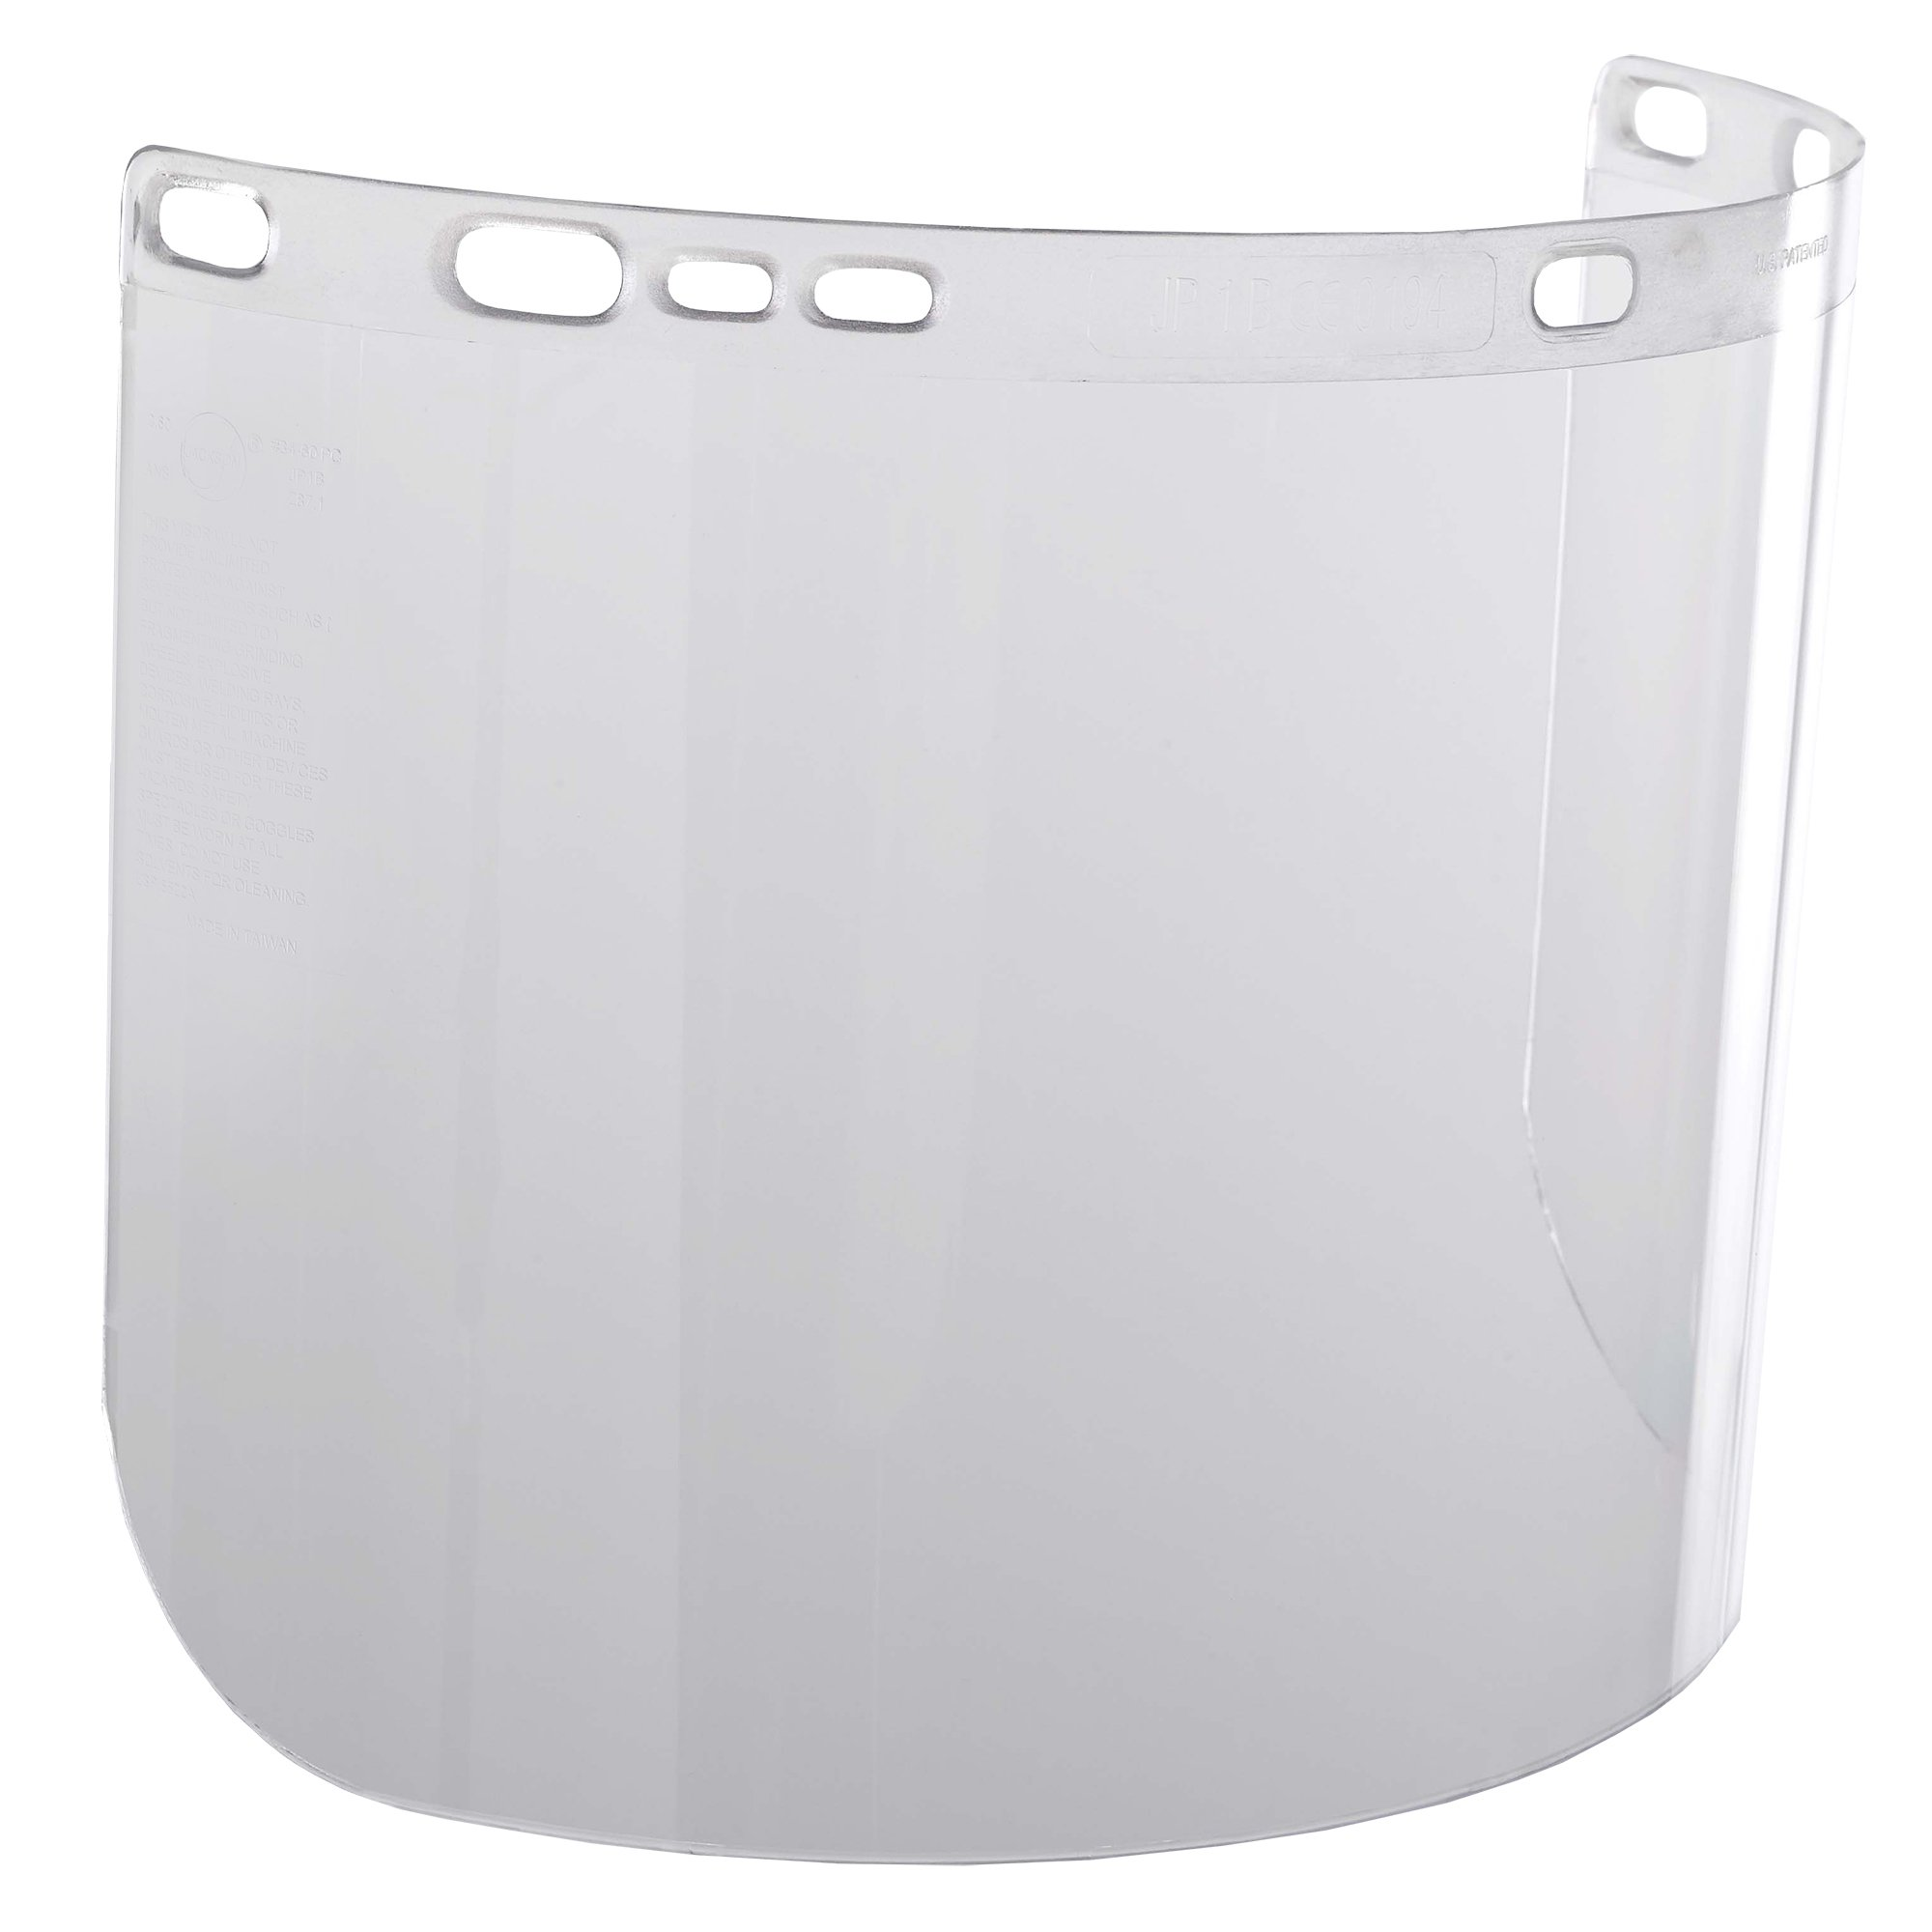 """Jackson Safety F20 High Impact Face Shield (14132), Polycarbonate, 8"""" x 15.5"""" x 0.06"""", Clear, Face Protection, Unbound, 36 Shields / Case by Jackson Safety (Image #1)"""